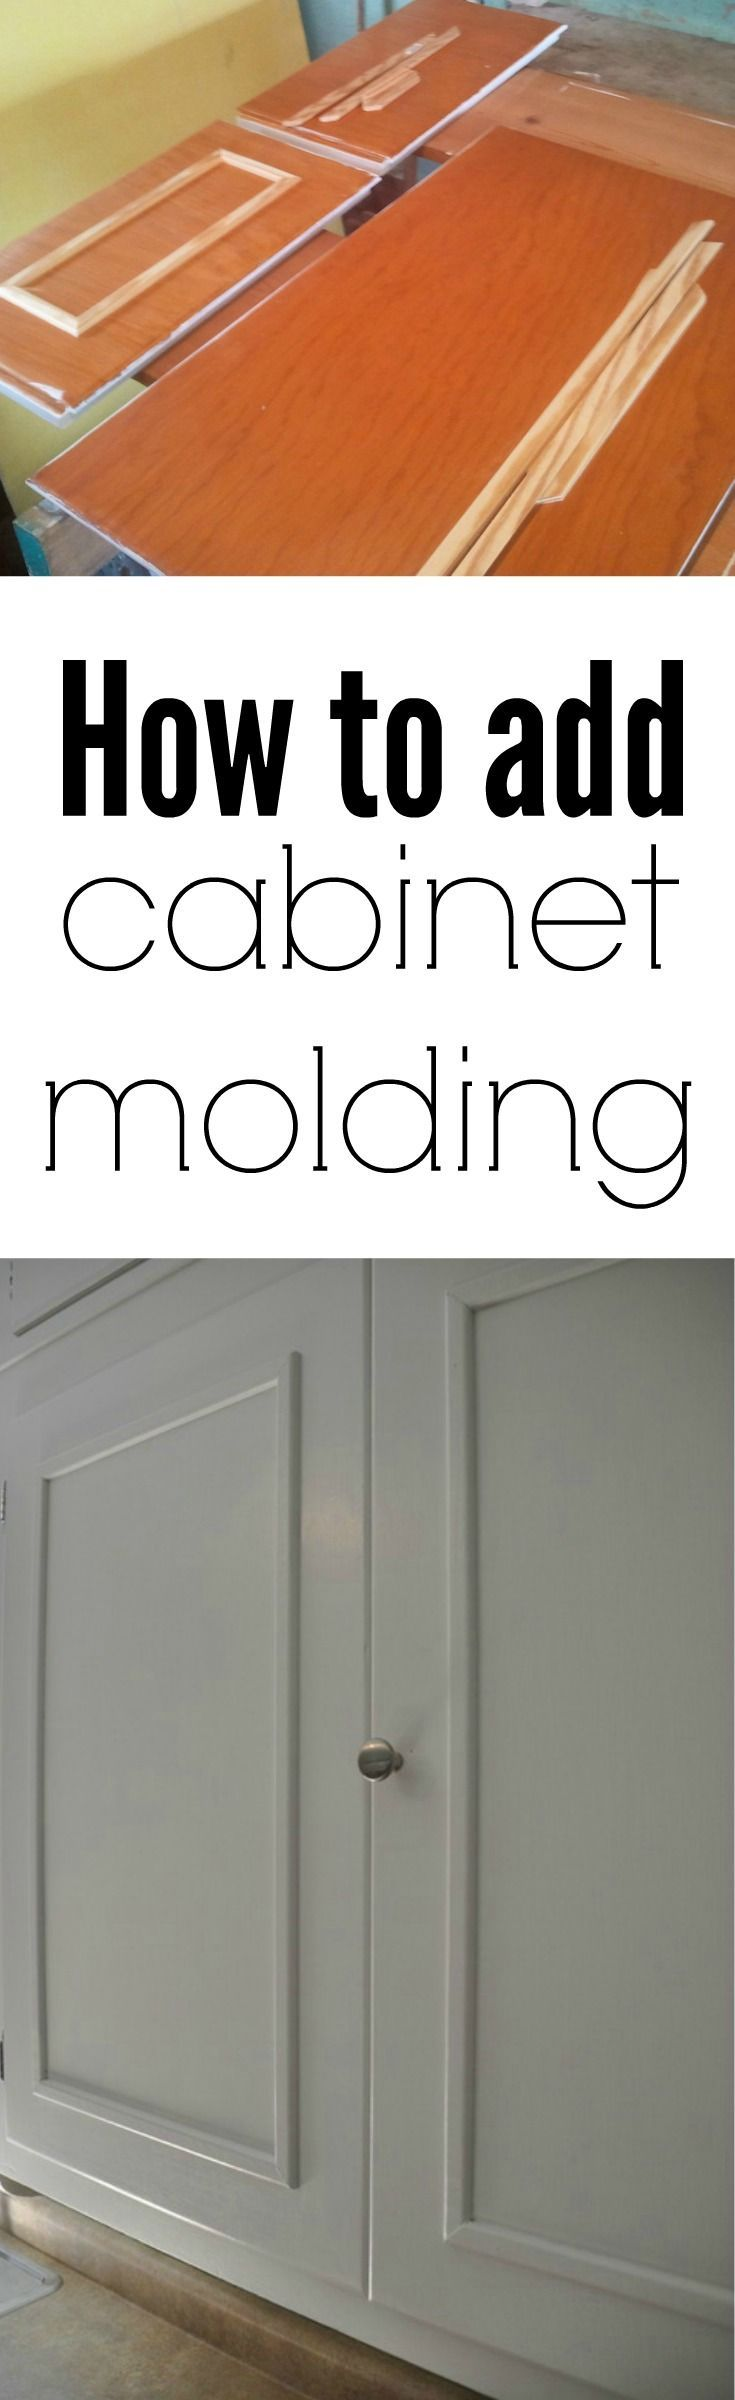 How to add cabinet molding.  Adds dimension to older kitchen cabinets!